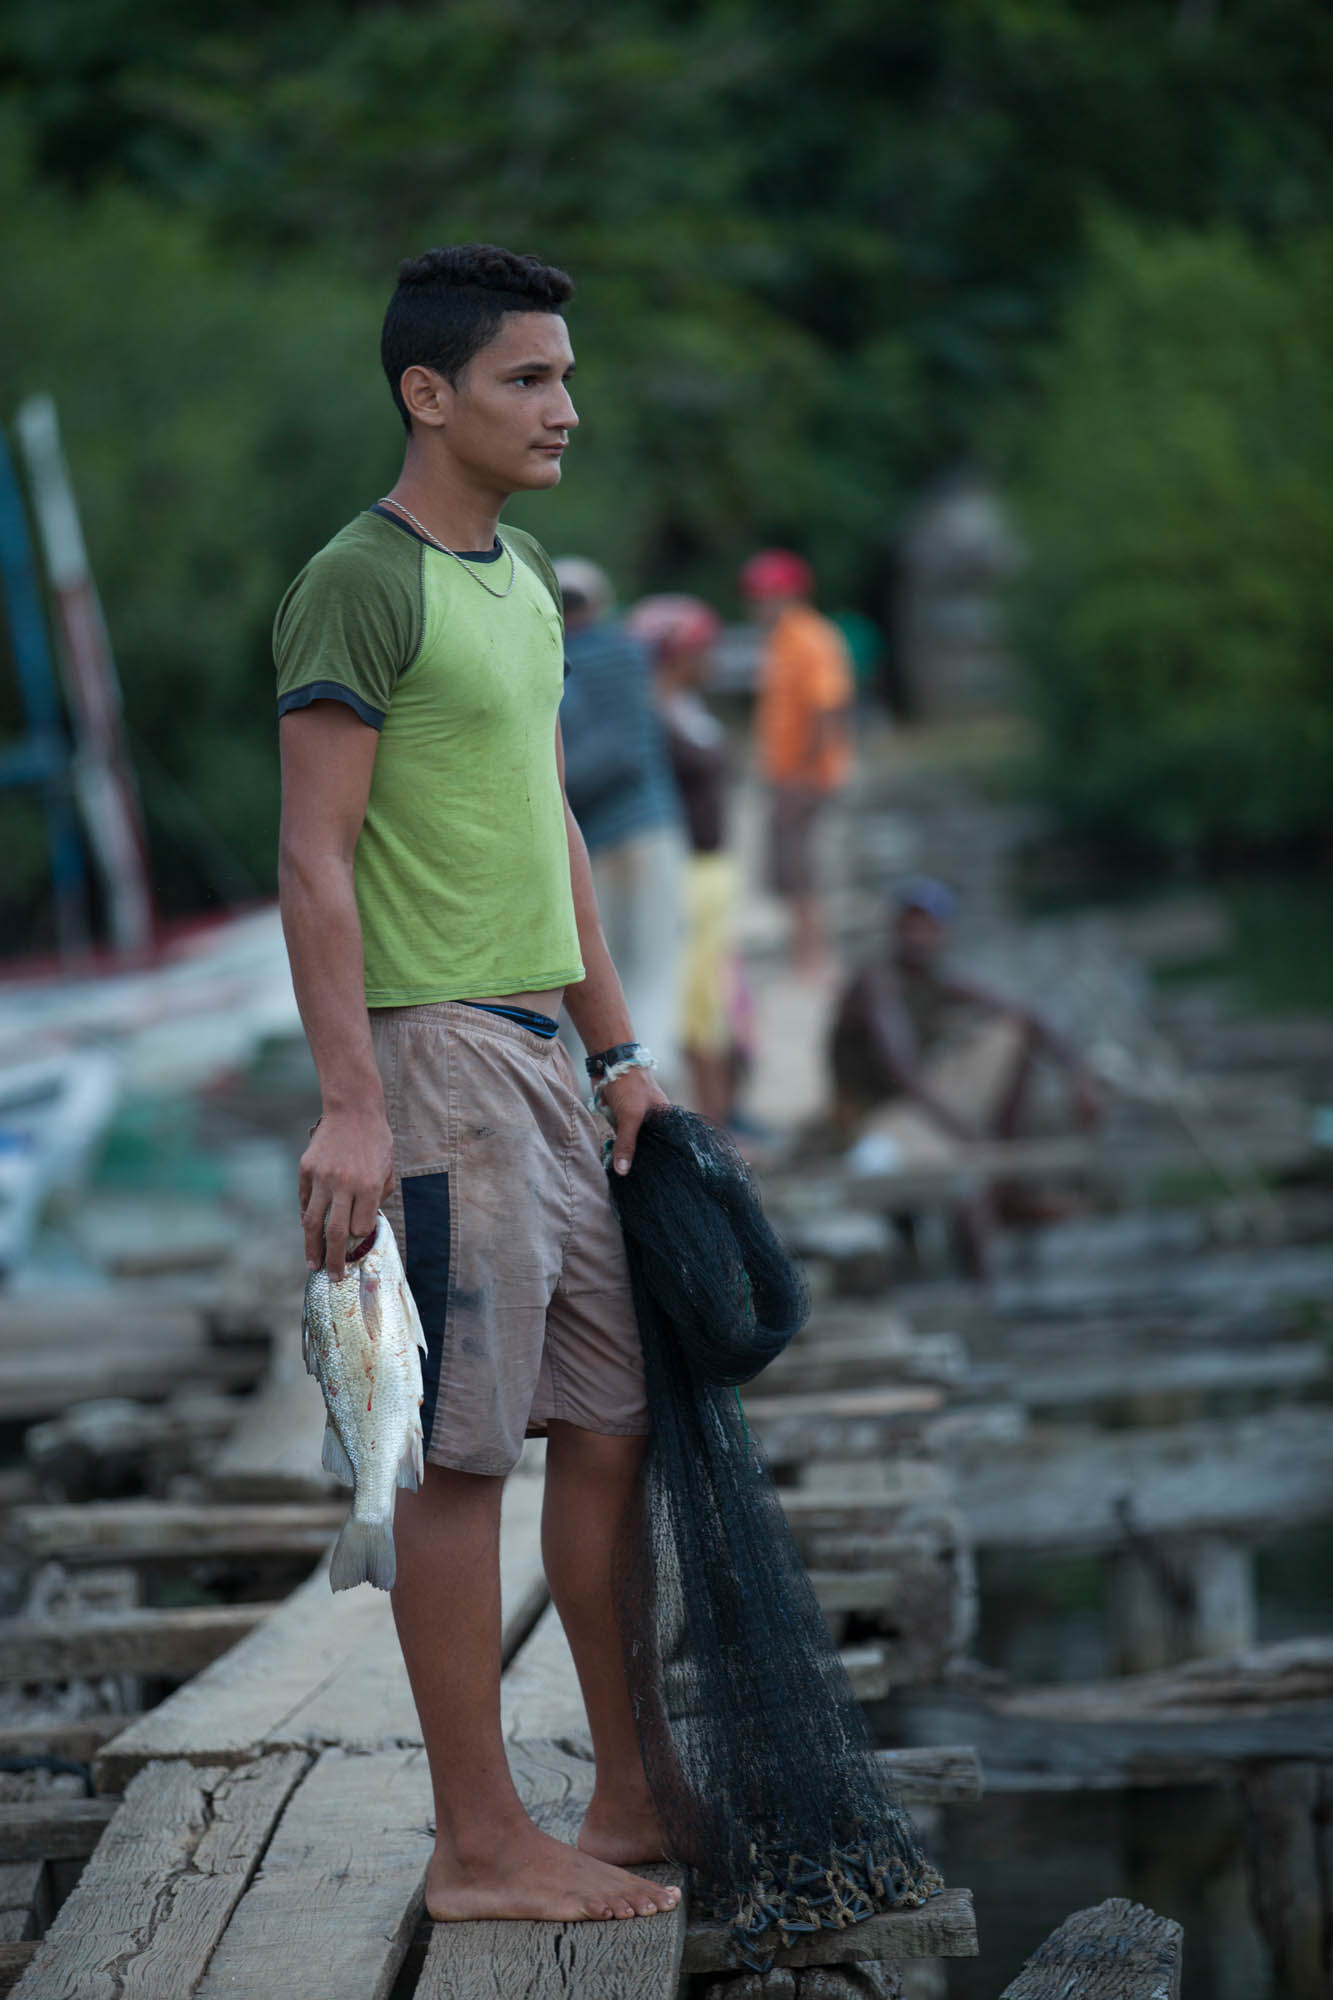 YOUNG FISHERMAN  A young fisherman perched along the floating docks outside Baracoa.